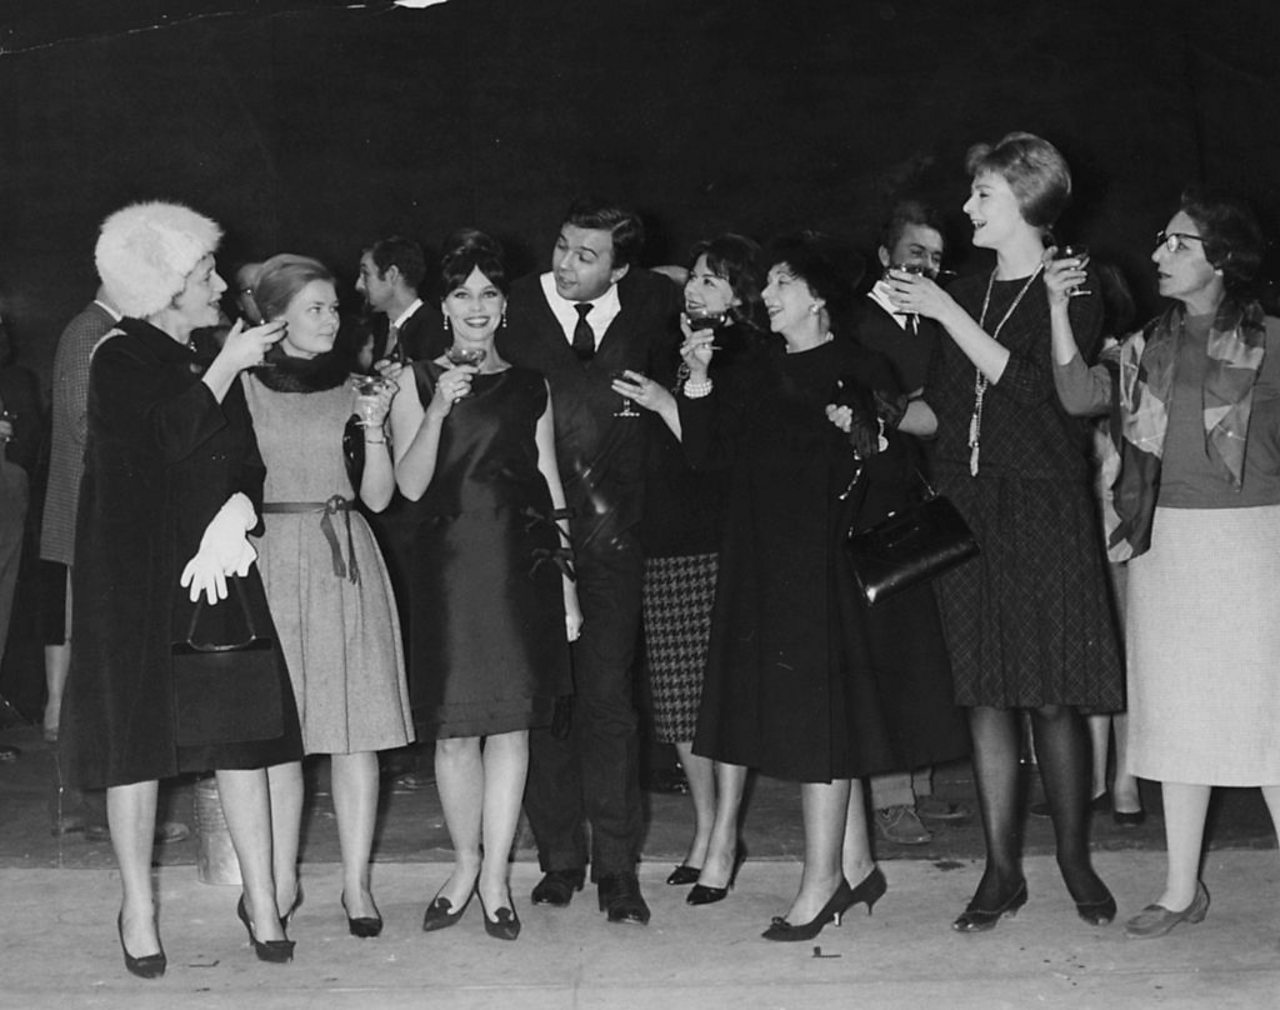 The Royal Shakespeare Company, including Judi Dench (second on left), share a toast in 1961.